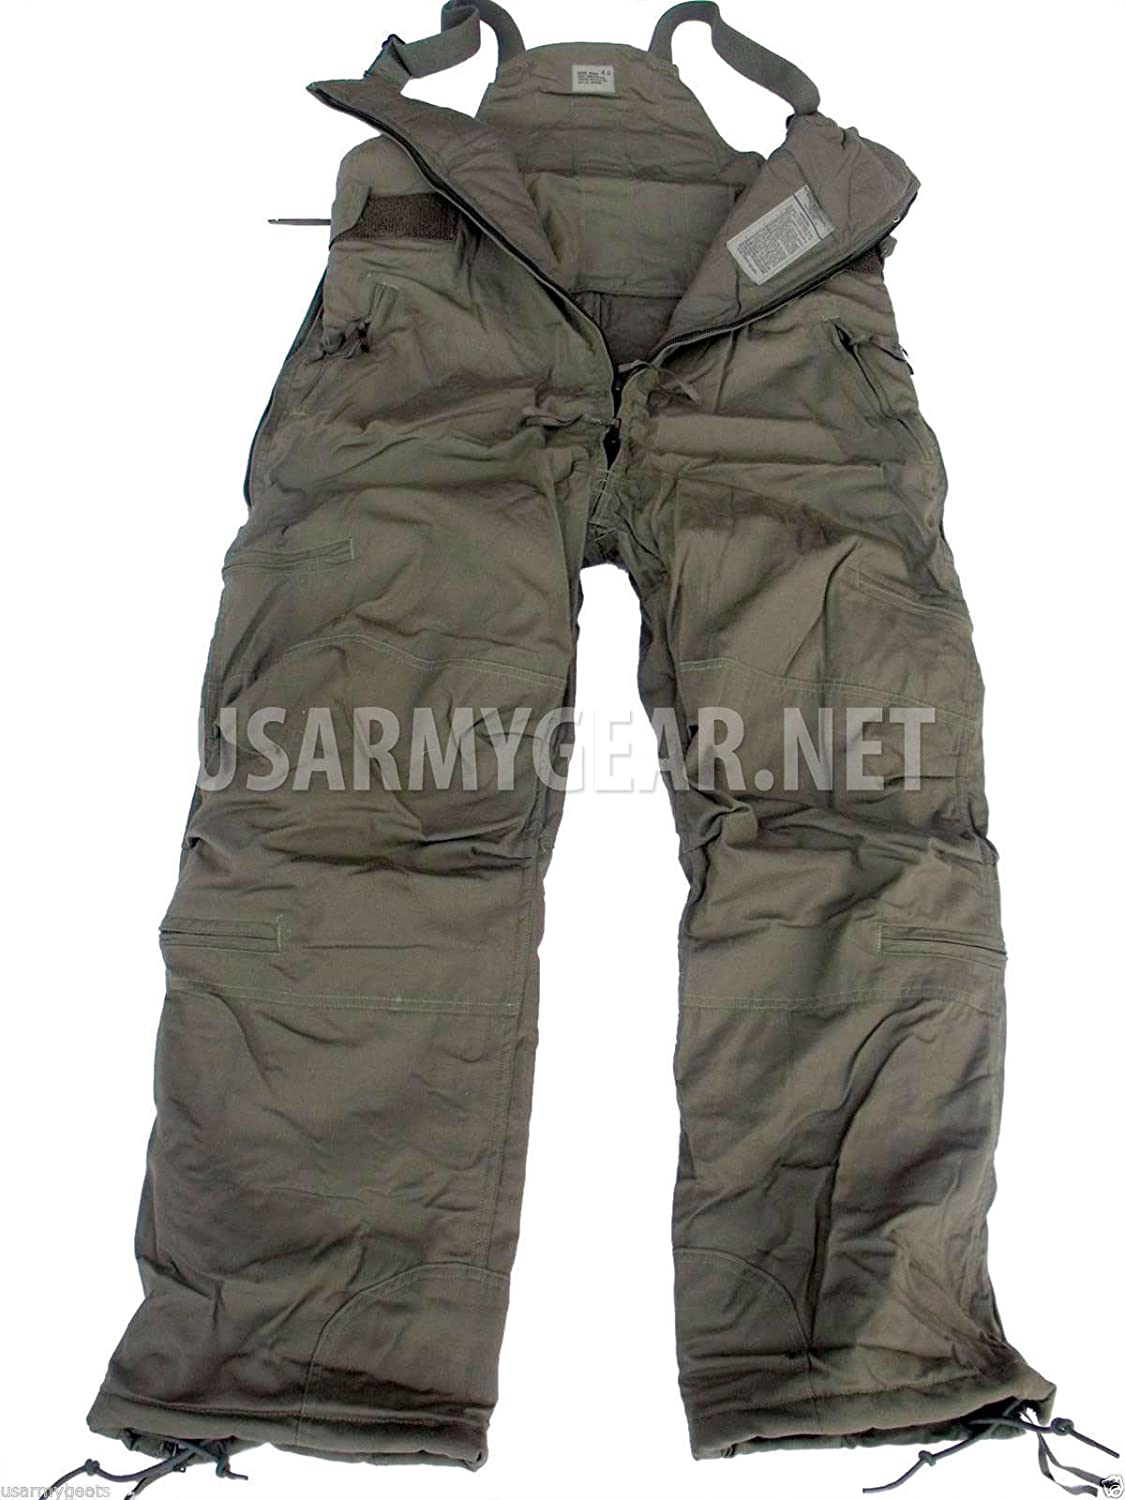 Very Warm Thick Us Army Military Insulated Pants Overalls Small Short S/S